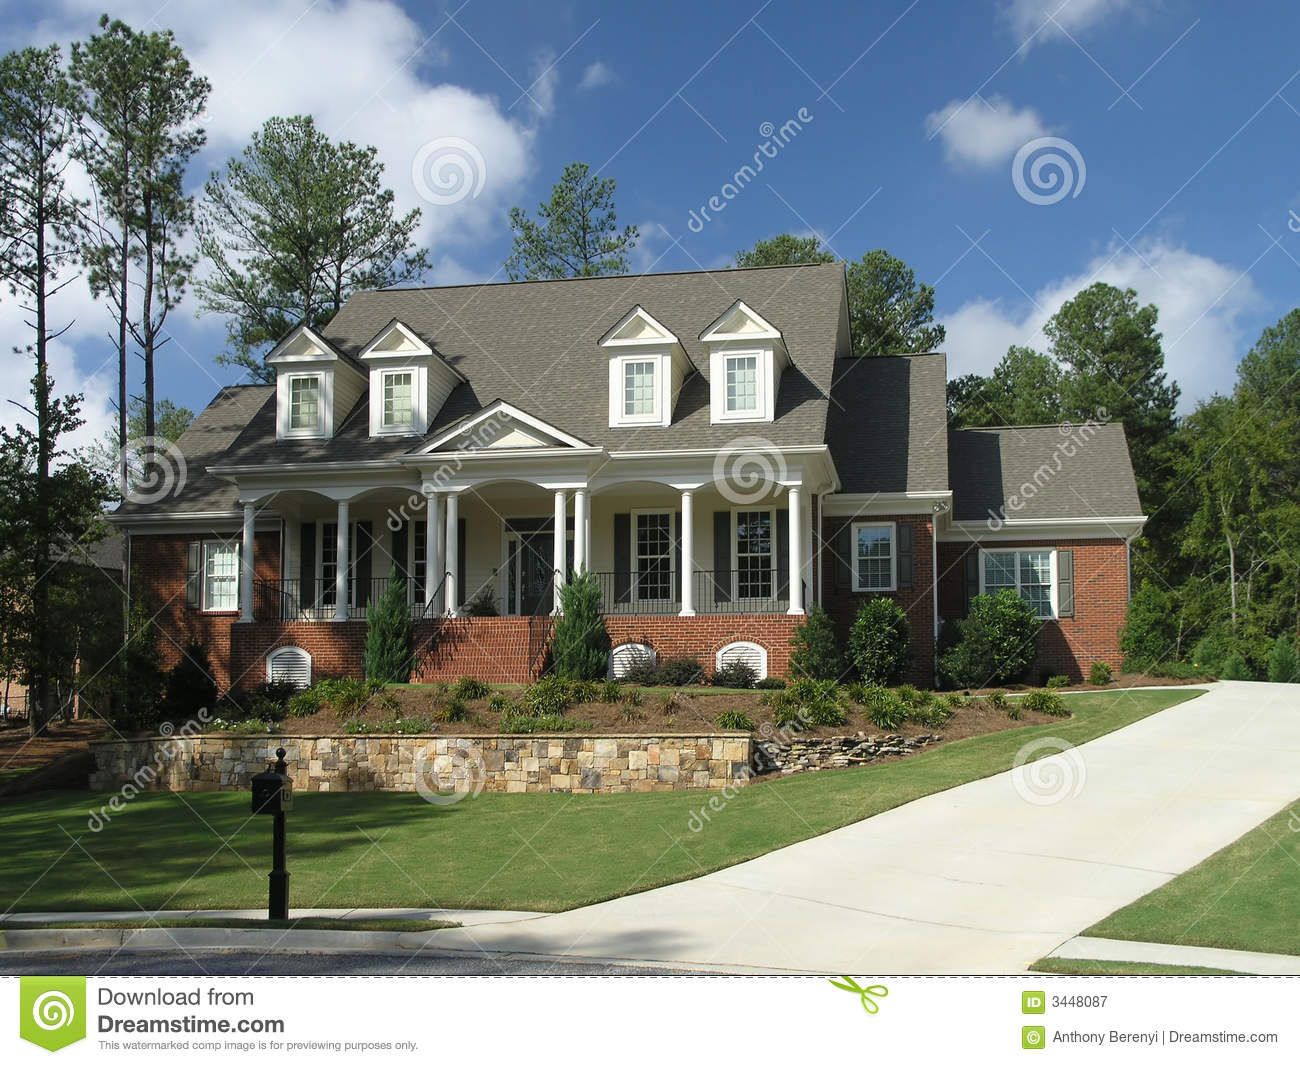 Luxury Home Exterior 32 Royalty Free Stock Photography